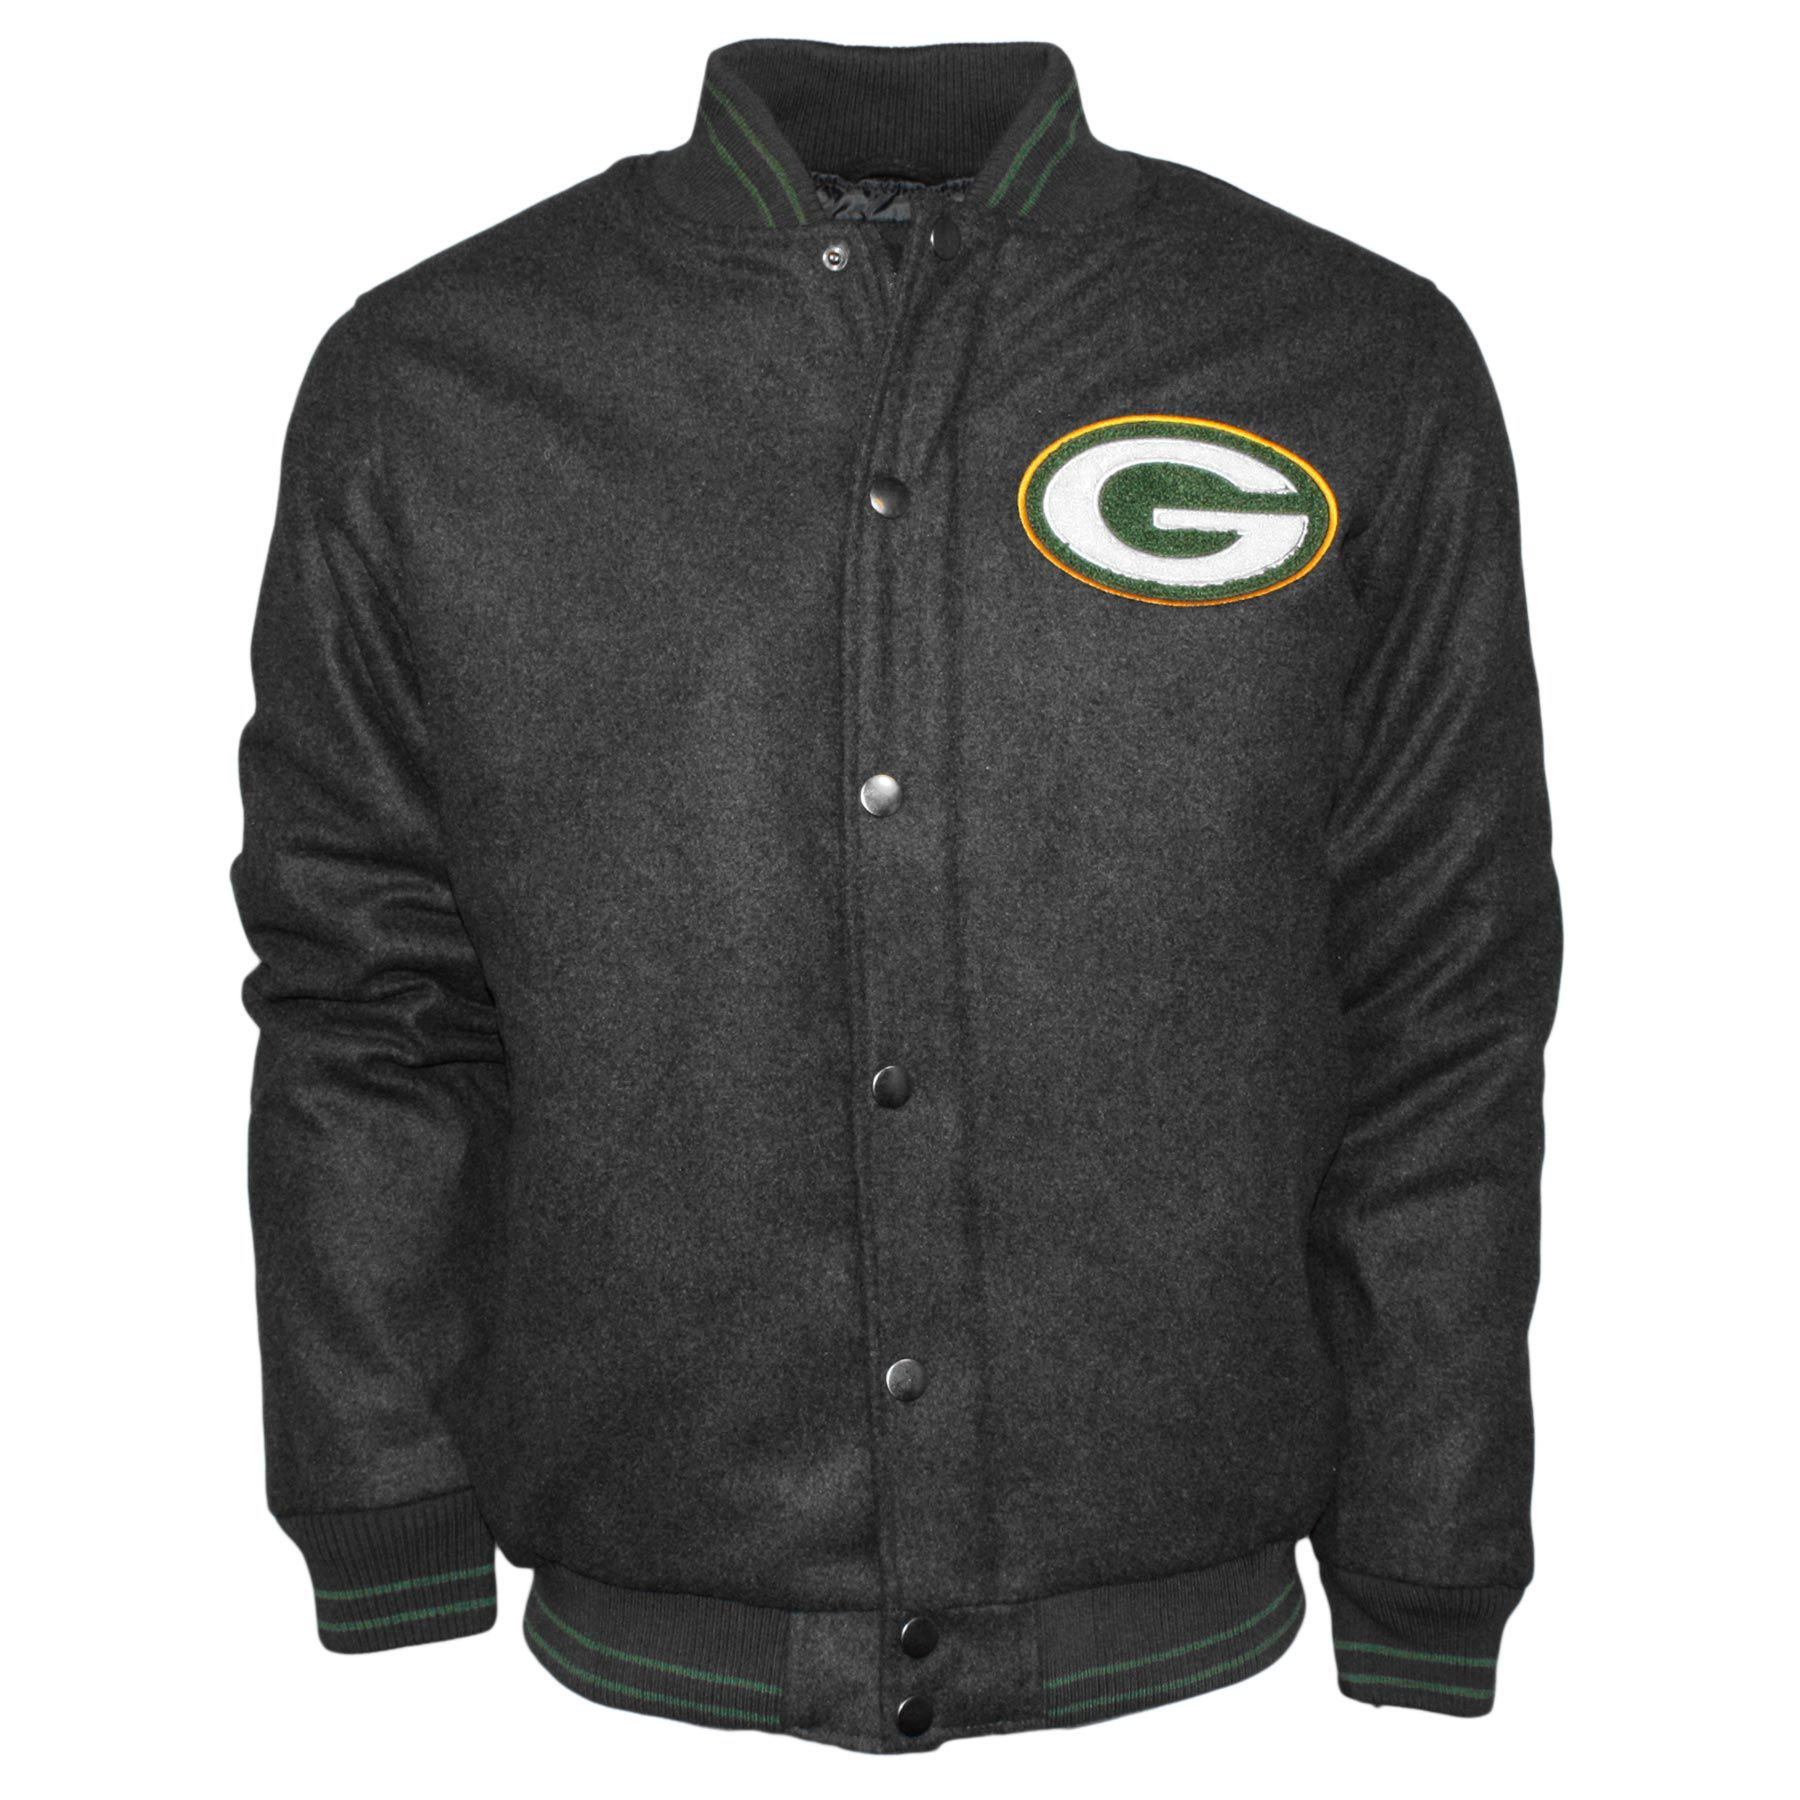 dd63ad020 Green Bay Packers Chenille Logo Nfl Varsity Jacket